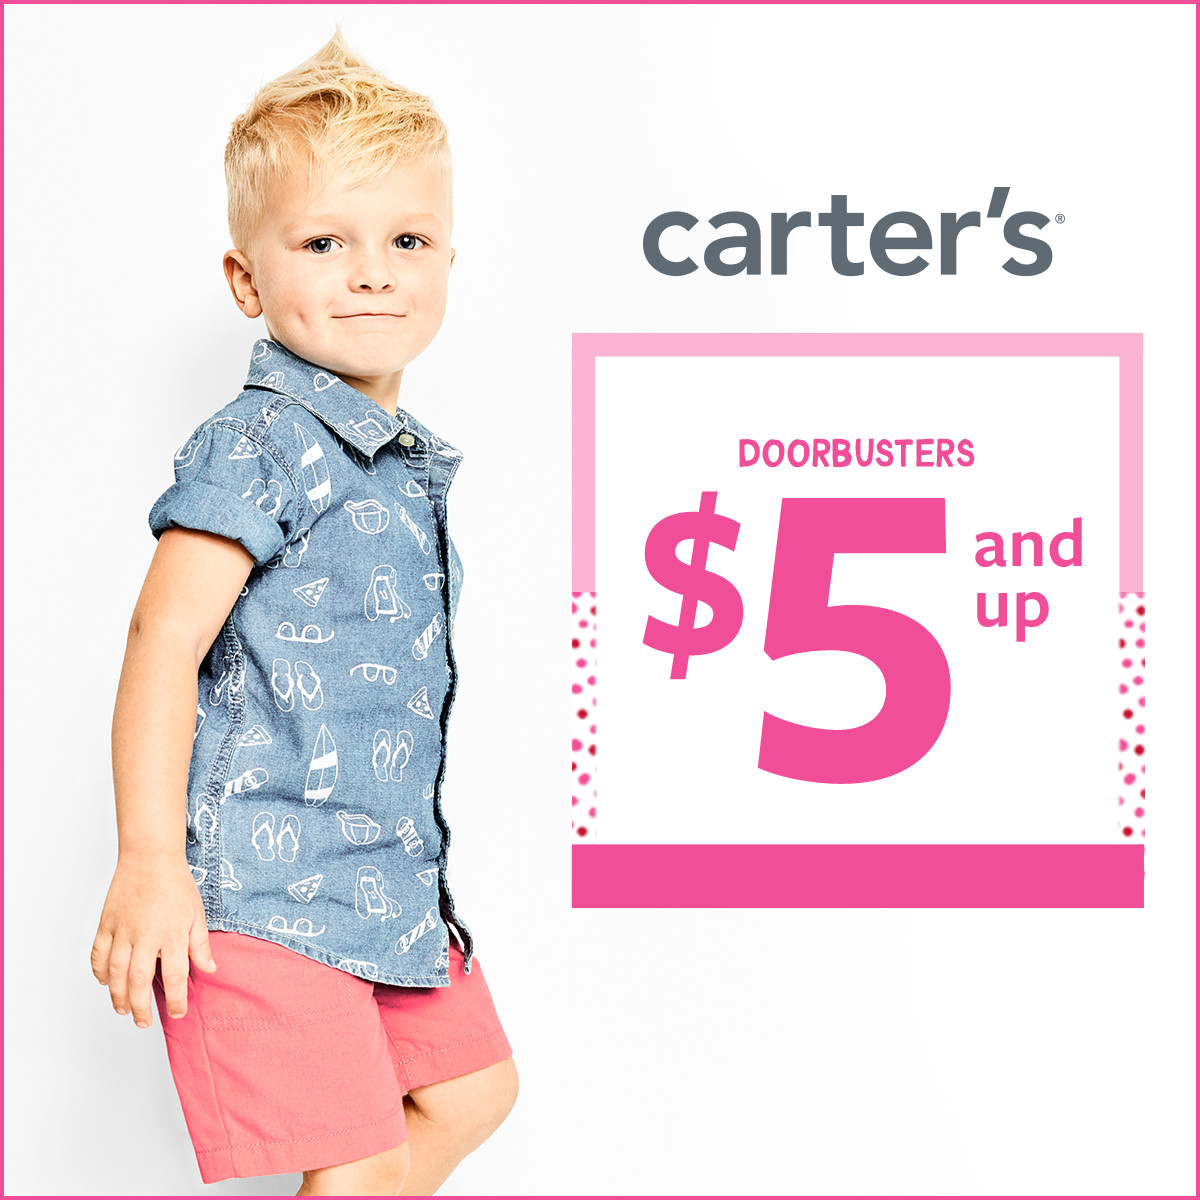 $5 and Up Doorbusters* event! at Carter's